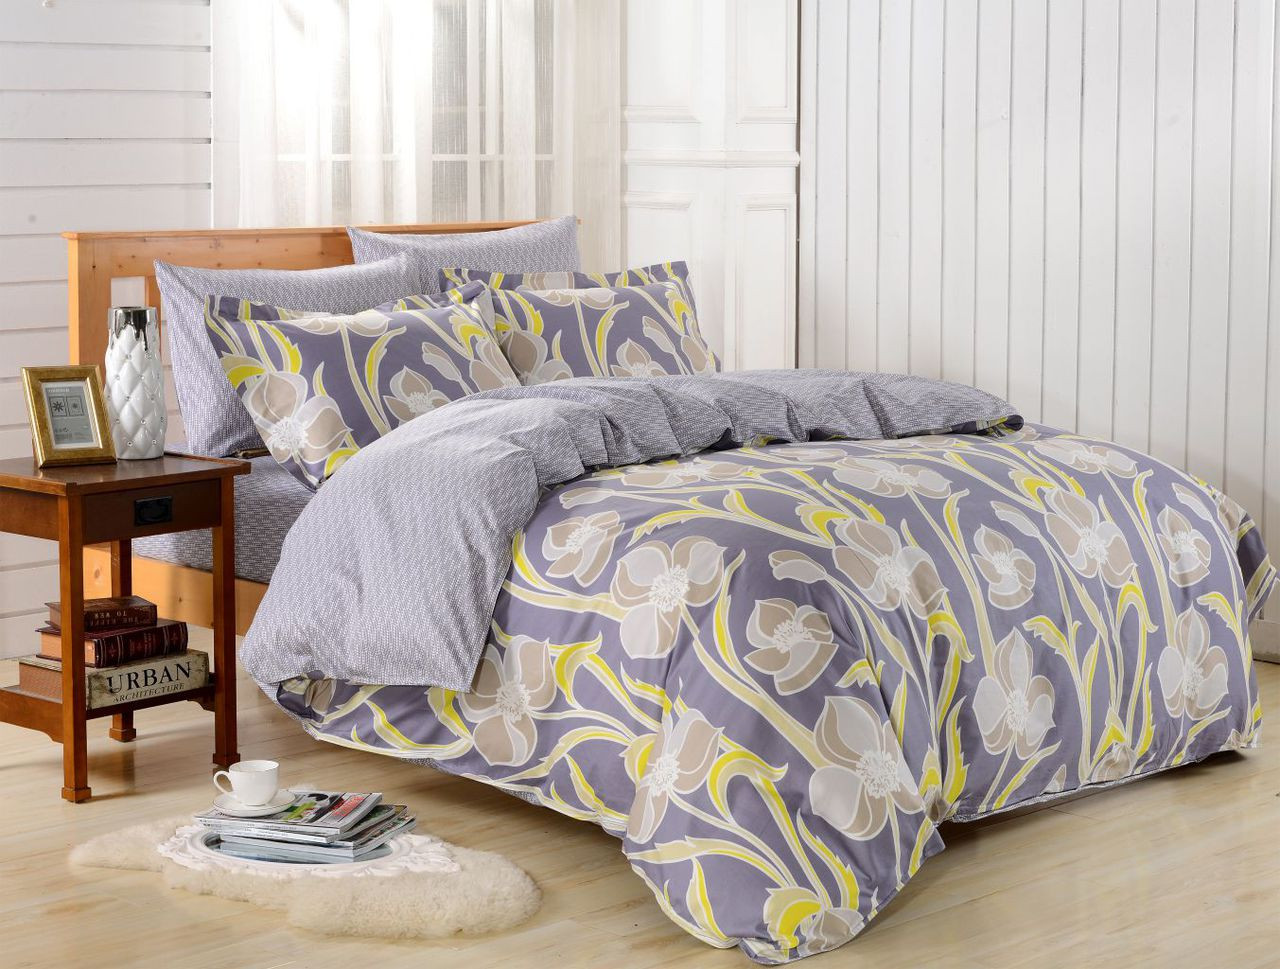 DM612Q Duvet Cover  Set, Dolce Mela Nafplio Bedding